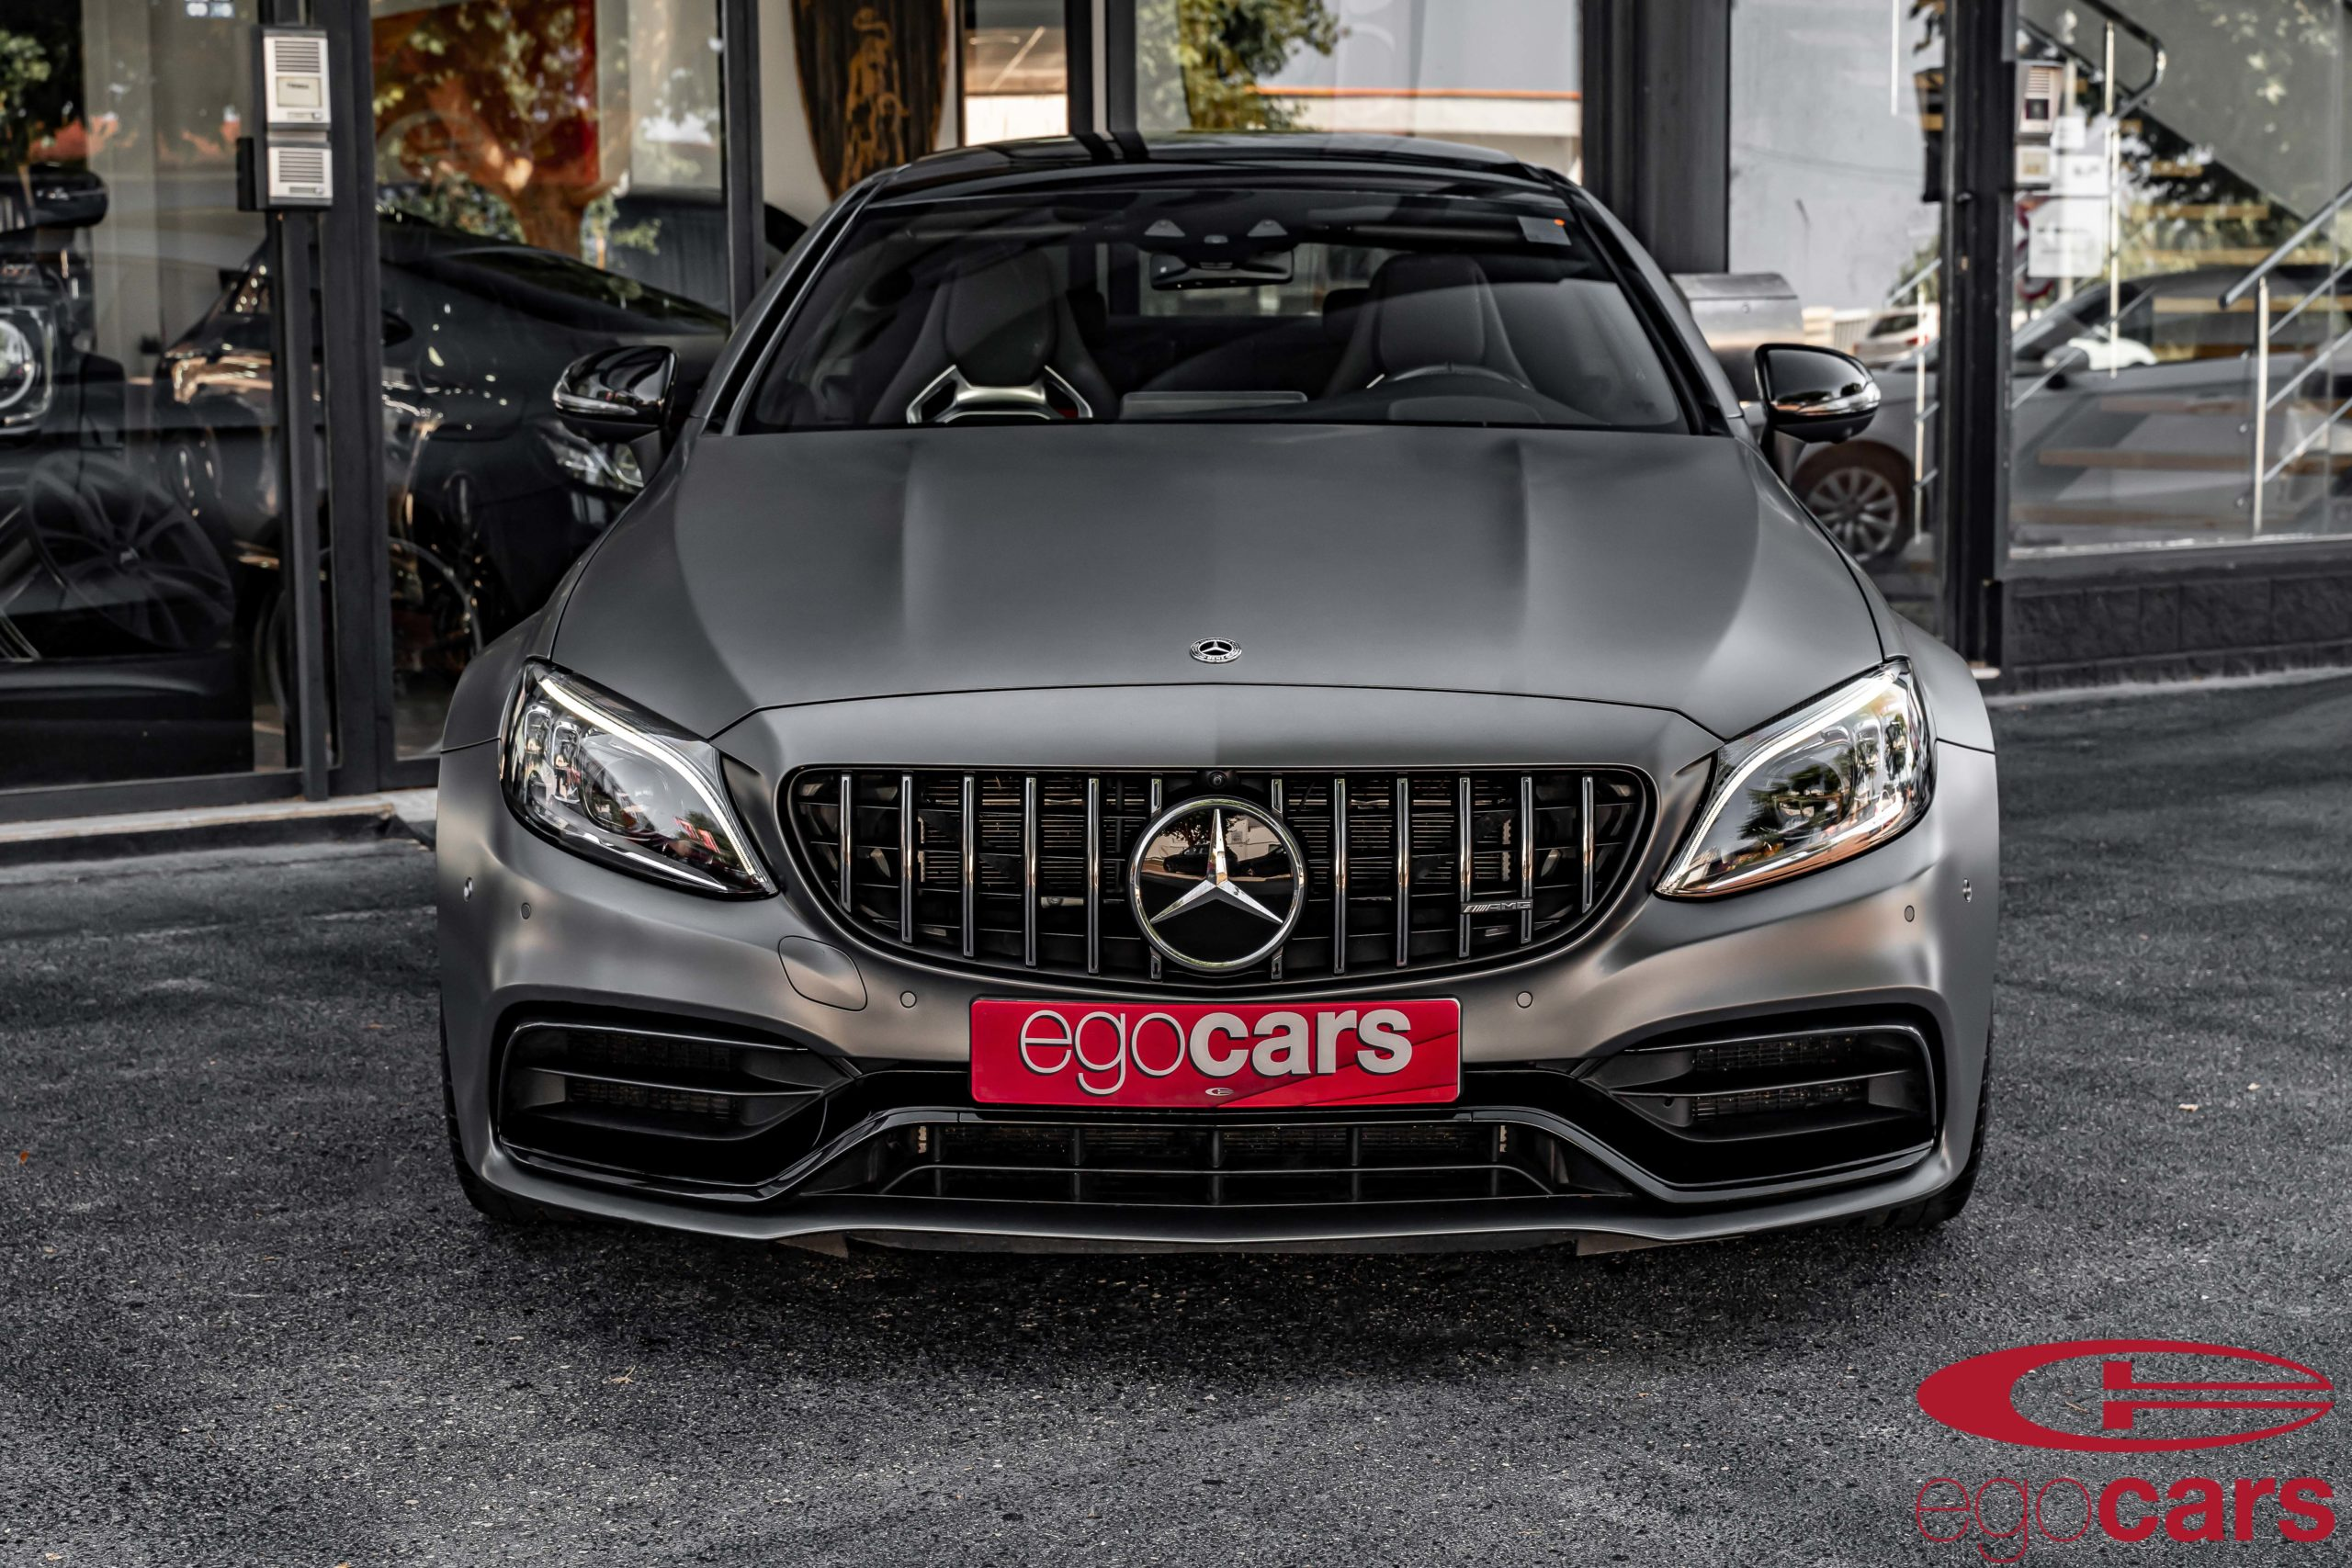 MERCEDES C63S COUPE AMG GRIS MATE EGOCARS_3